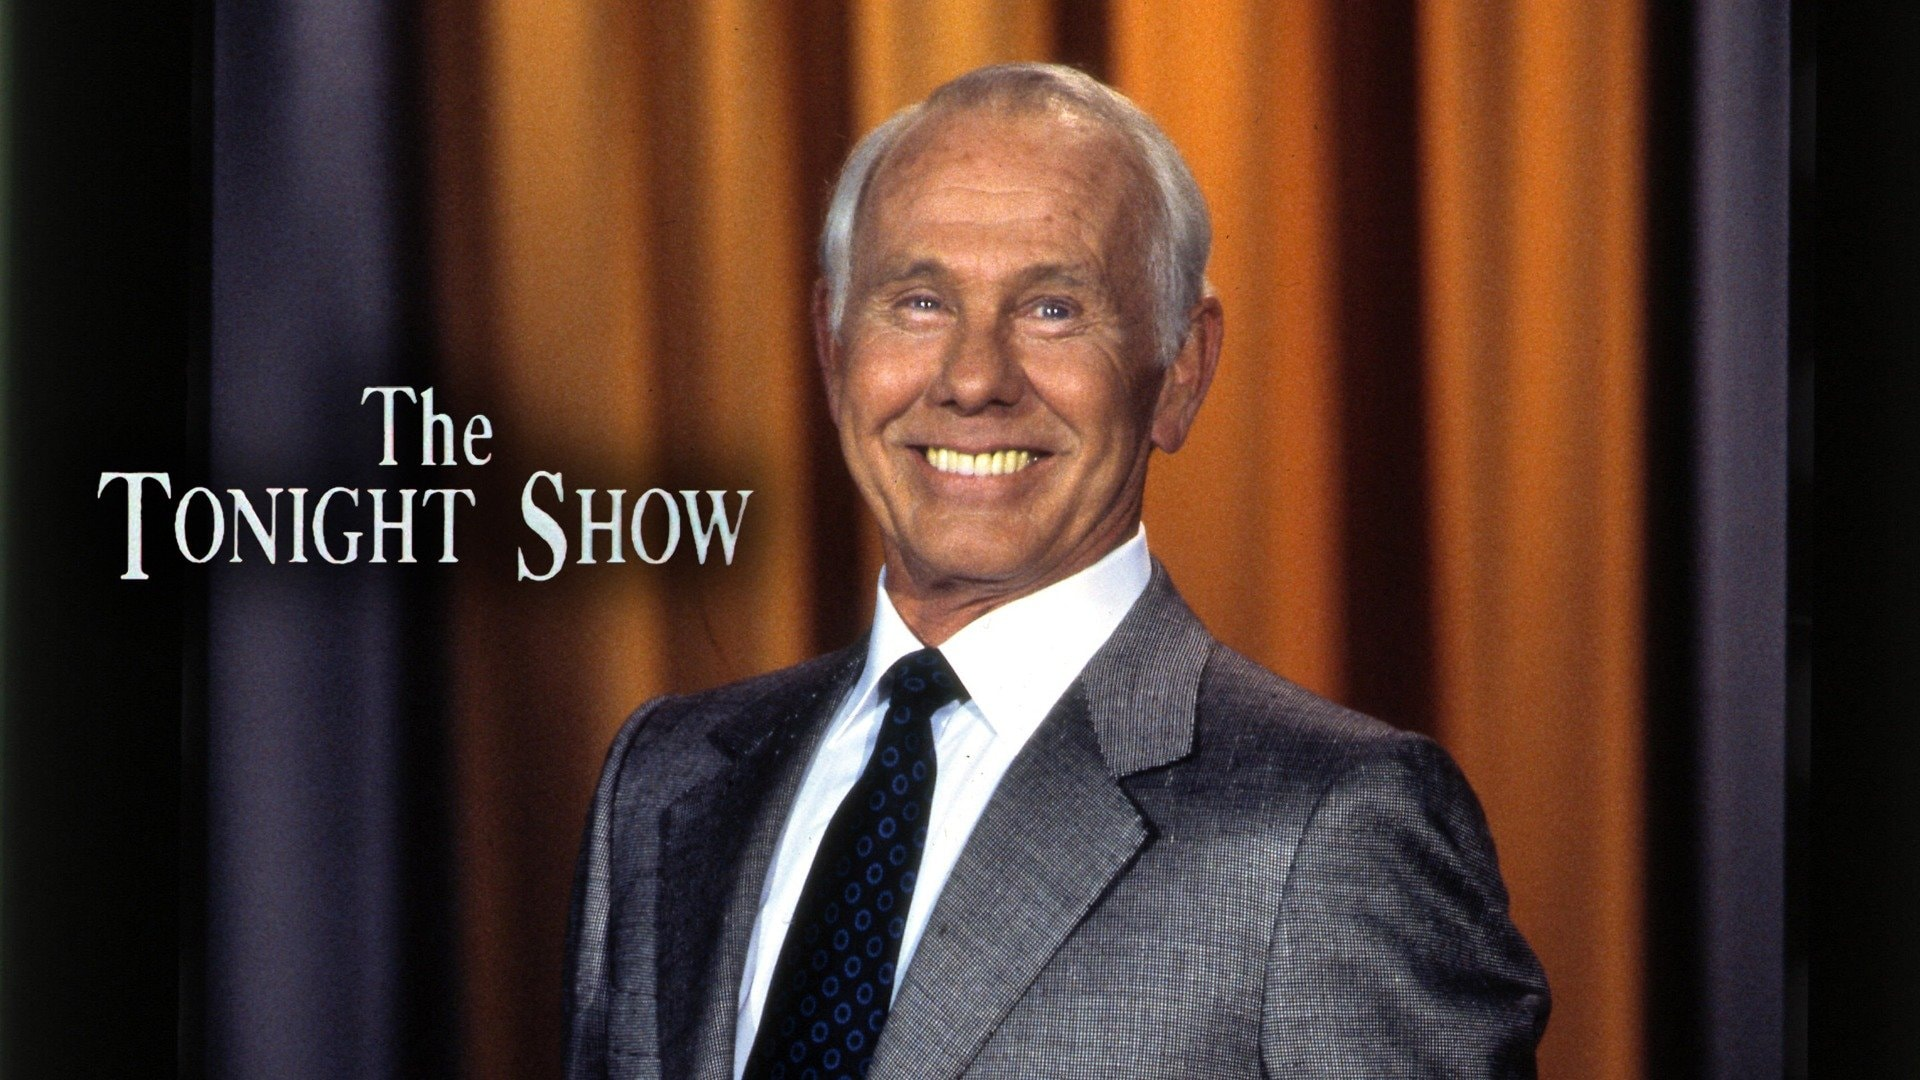 The Johnny Carson Show: The Best Of George Carlin (2/29/72)